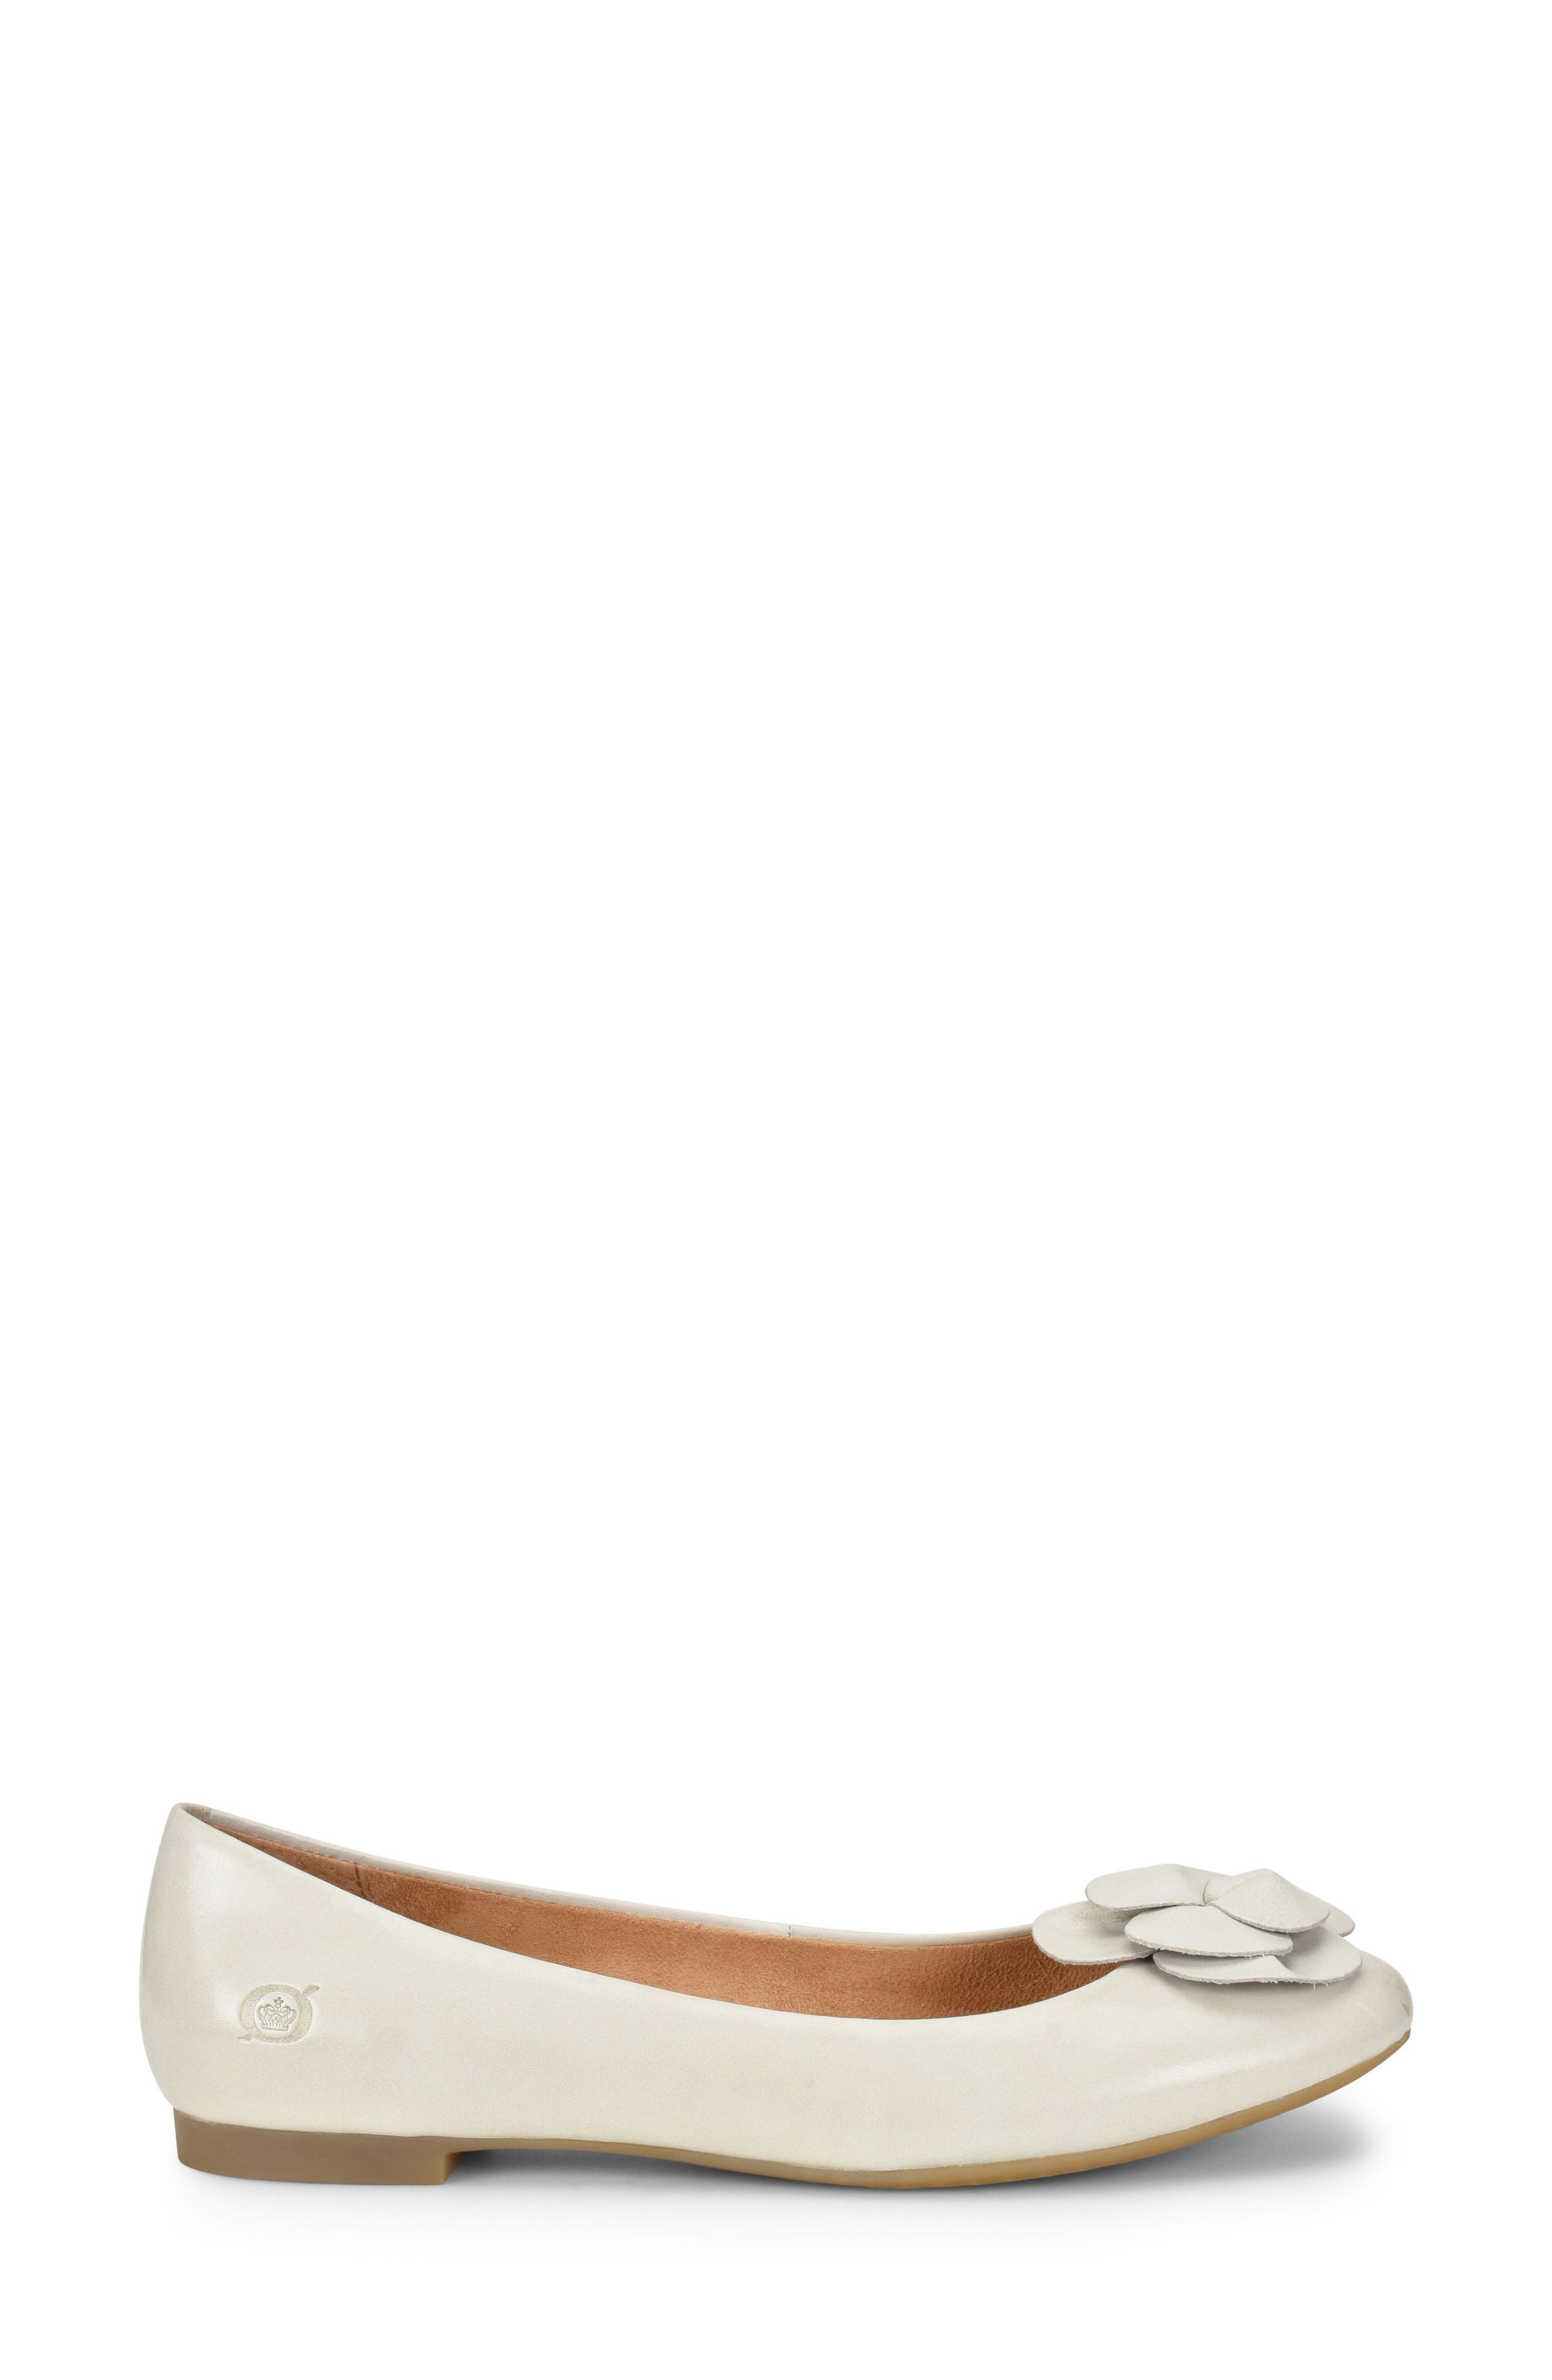 Annelie Flat,                             Alternate thumbnail 3, color,                             White Leather